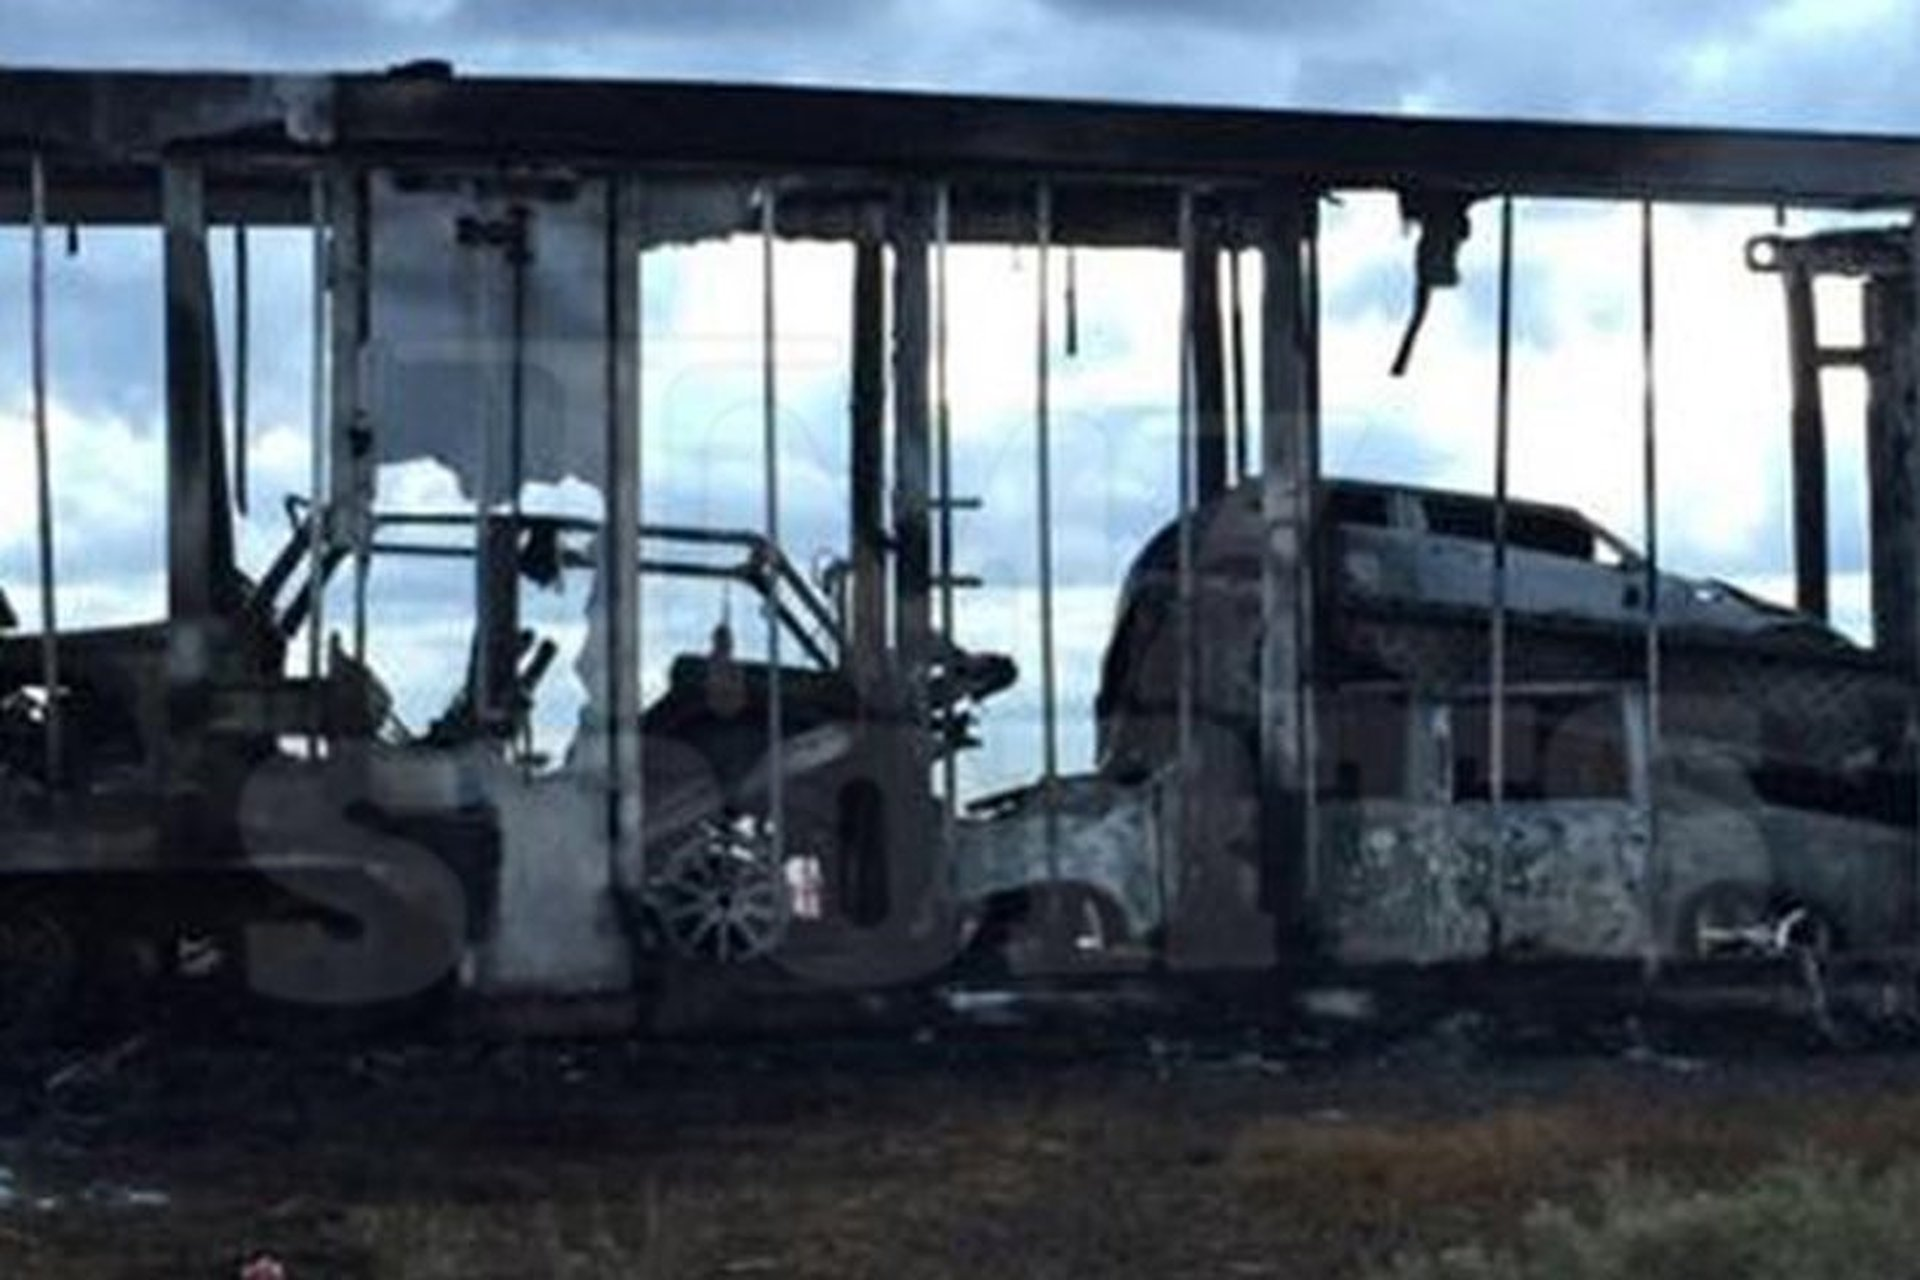 Floyd Mayweather's Fire-Damaged Jeep Wrangler to Be Replaced